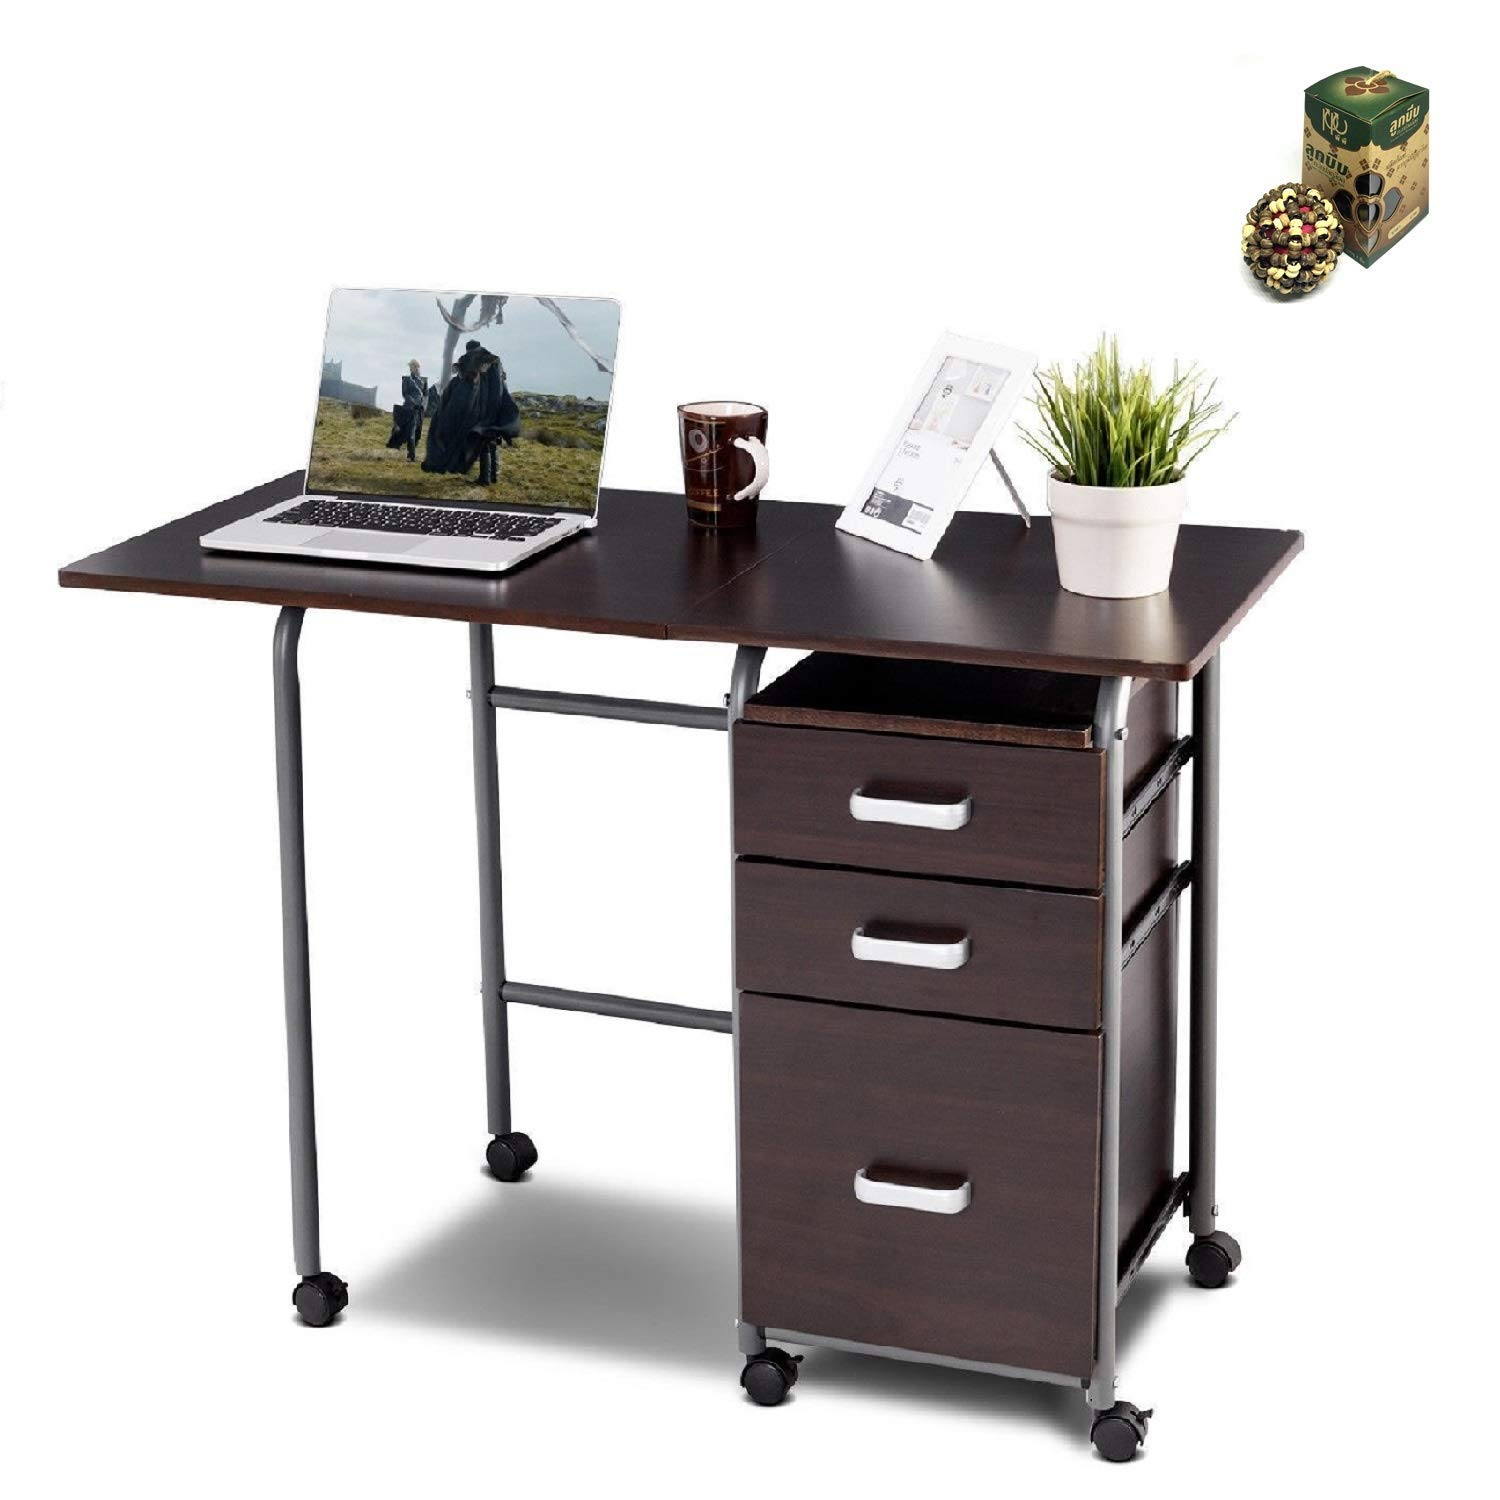 Folding Computer Laptop Desk Wheeled Home Office Furniture - Brown by SpiritOne + Gift Coconut Shell Massage Ball